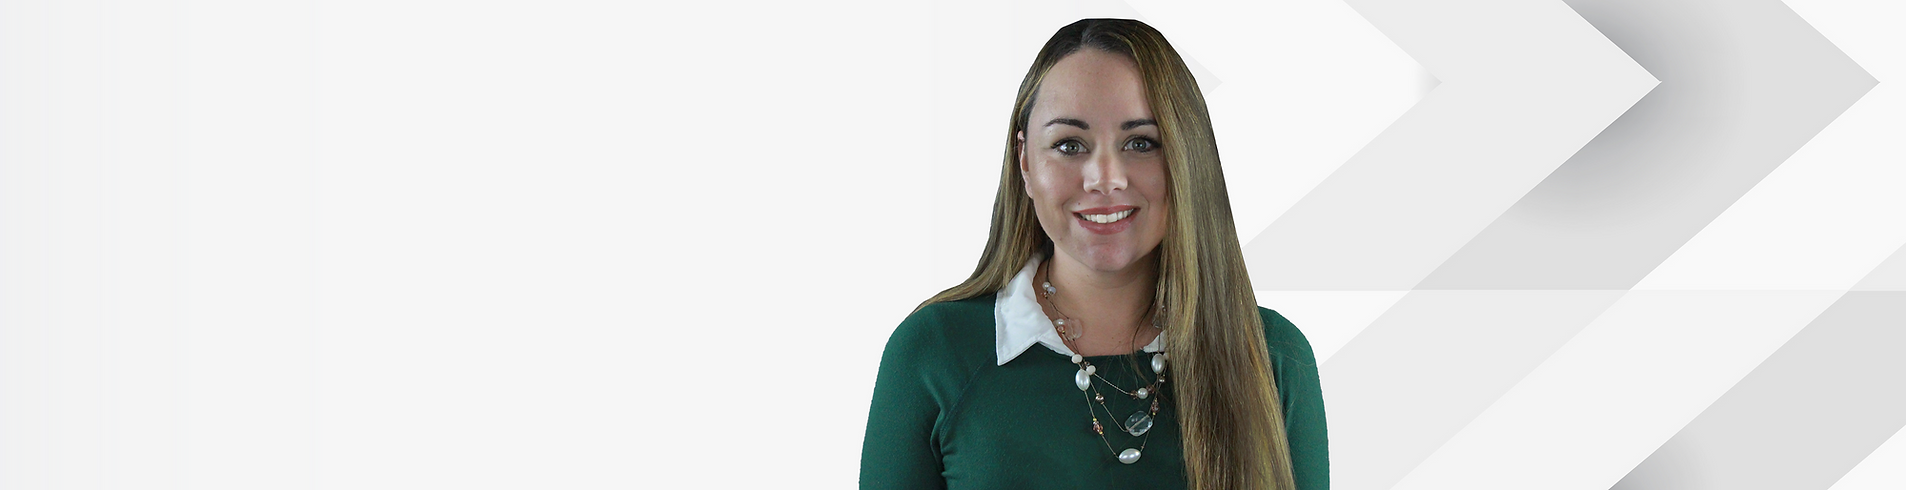 Nicole Harris, Paralegal in Rochester NY, Law Offices of Pullano & Farrow PLLC